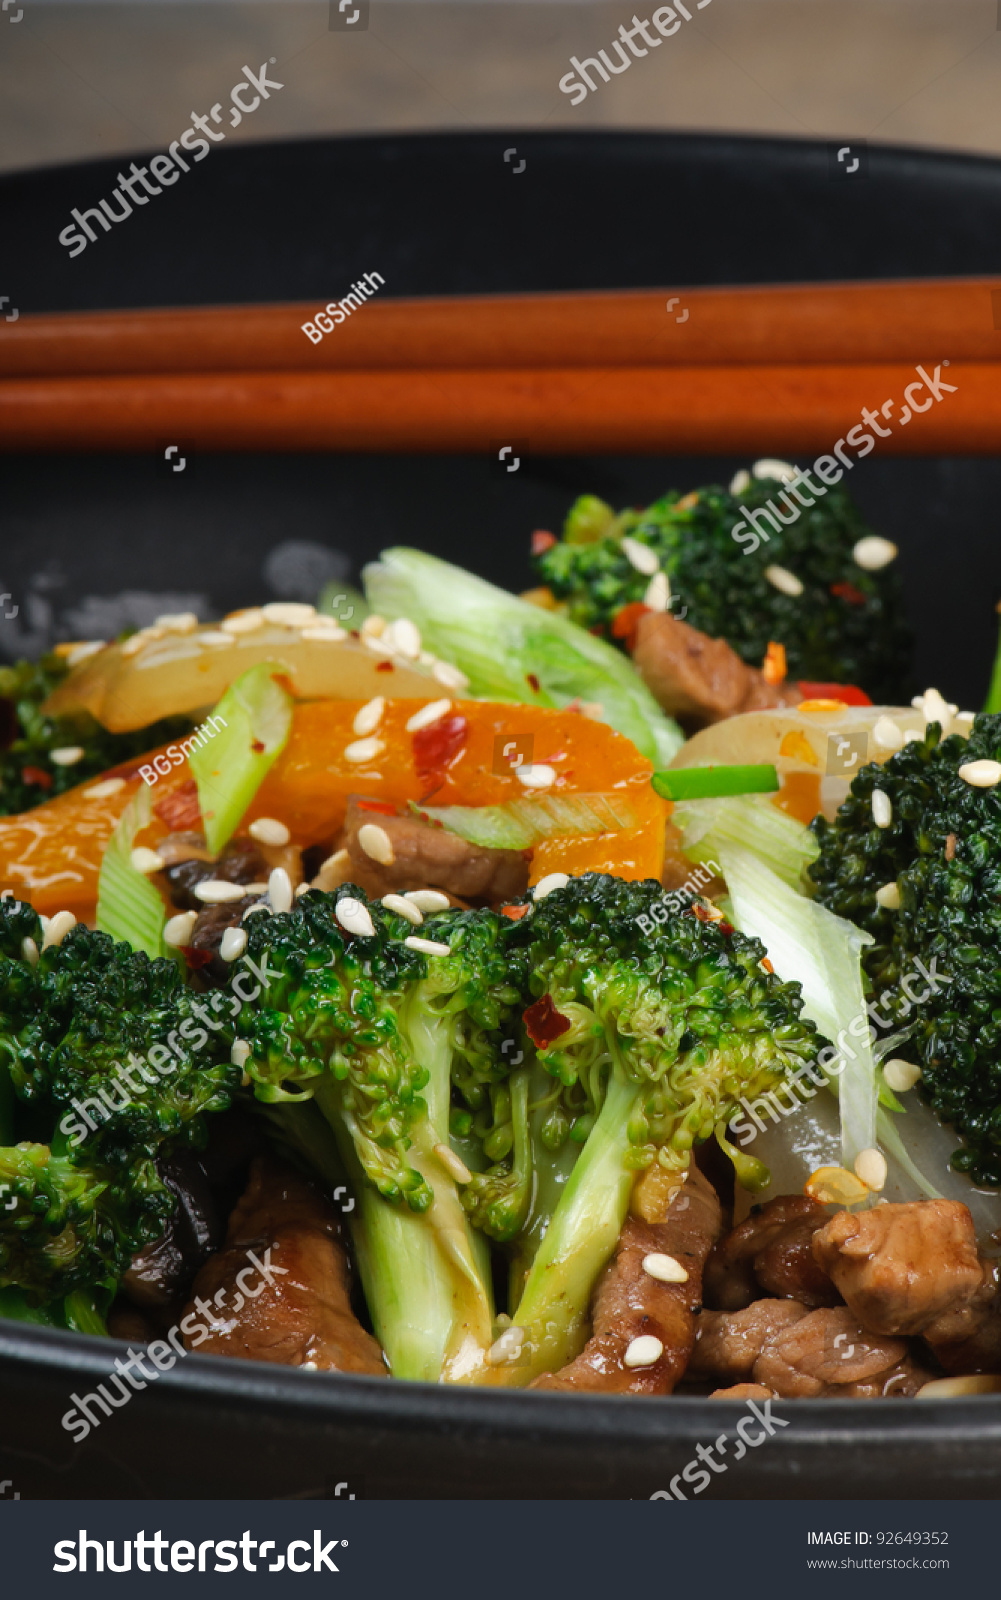 Beef Stir-Fry with broccoli, carrots, onions, peppers, sesame seeds ...